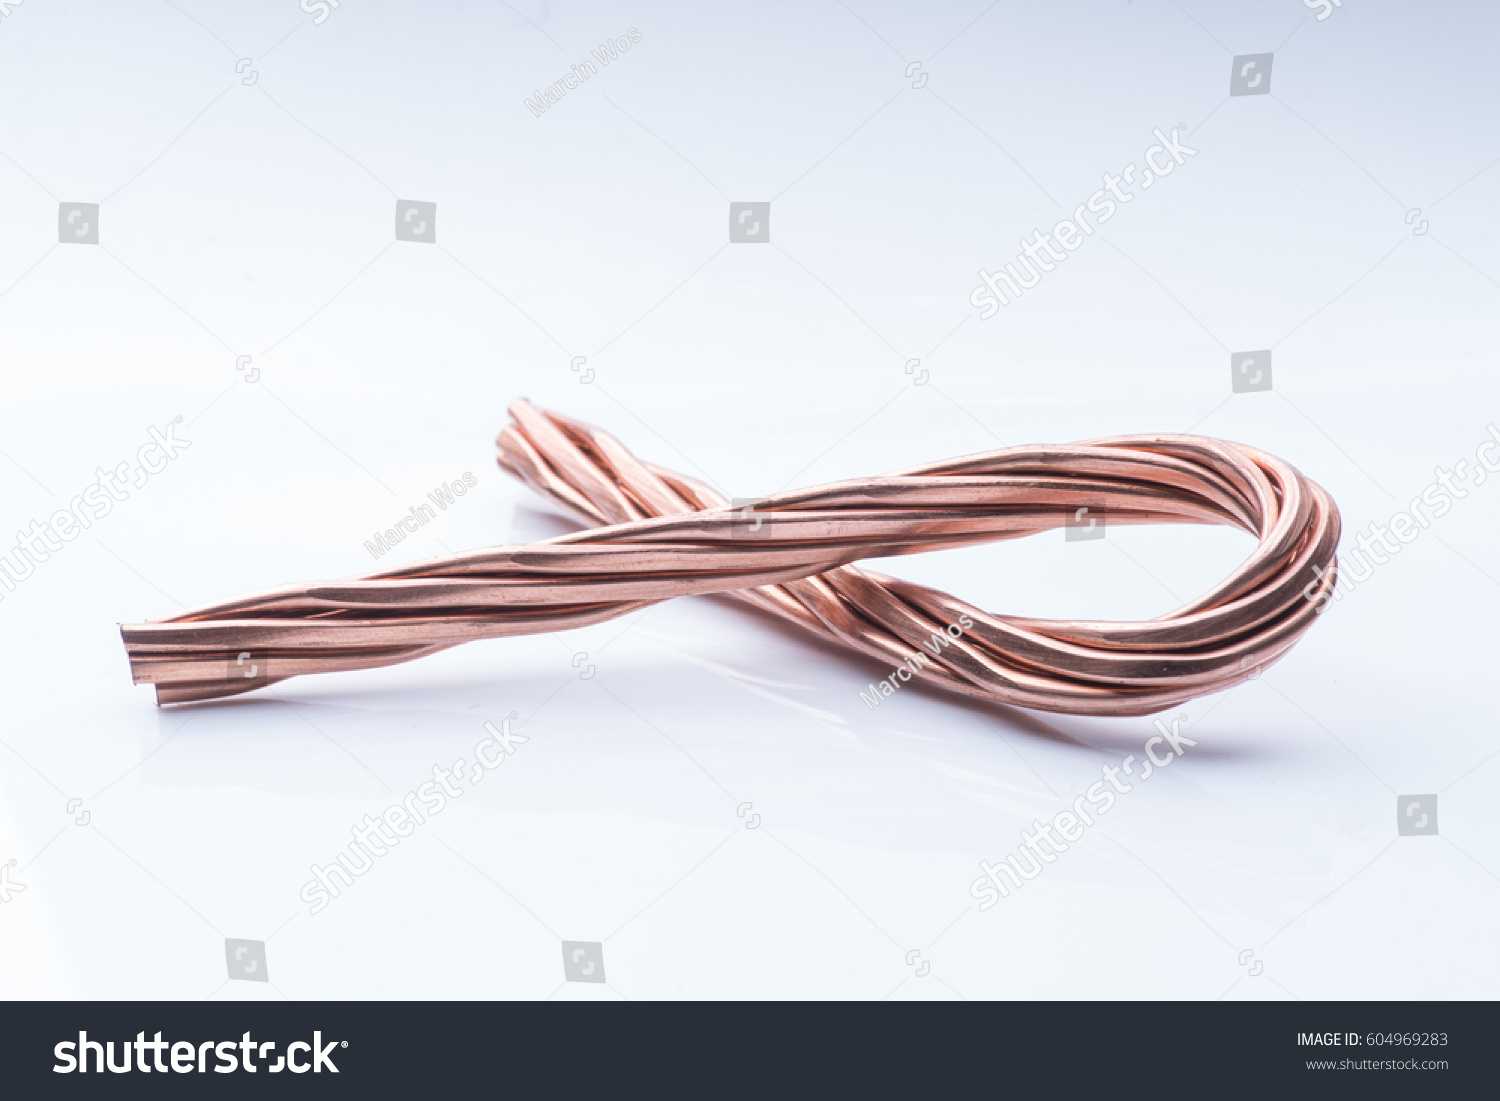 Excellent Red Copper Wire Gallery - Electrical and Wiring Diagram ...